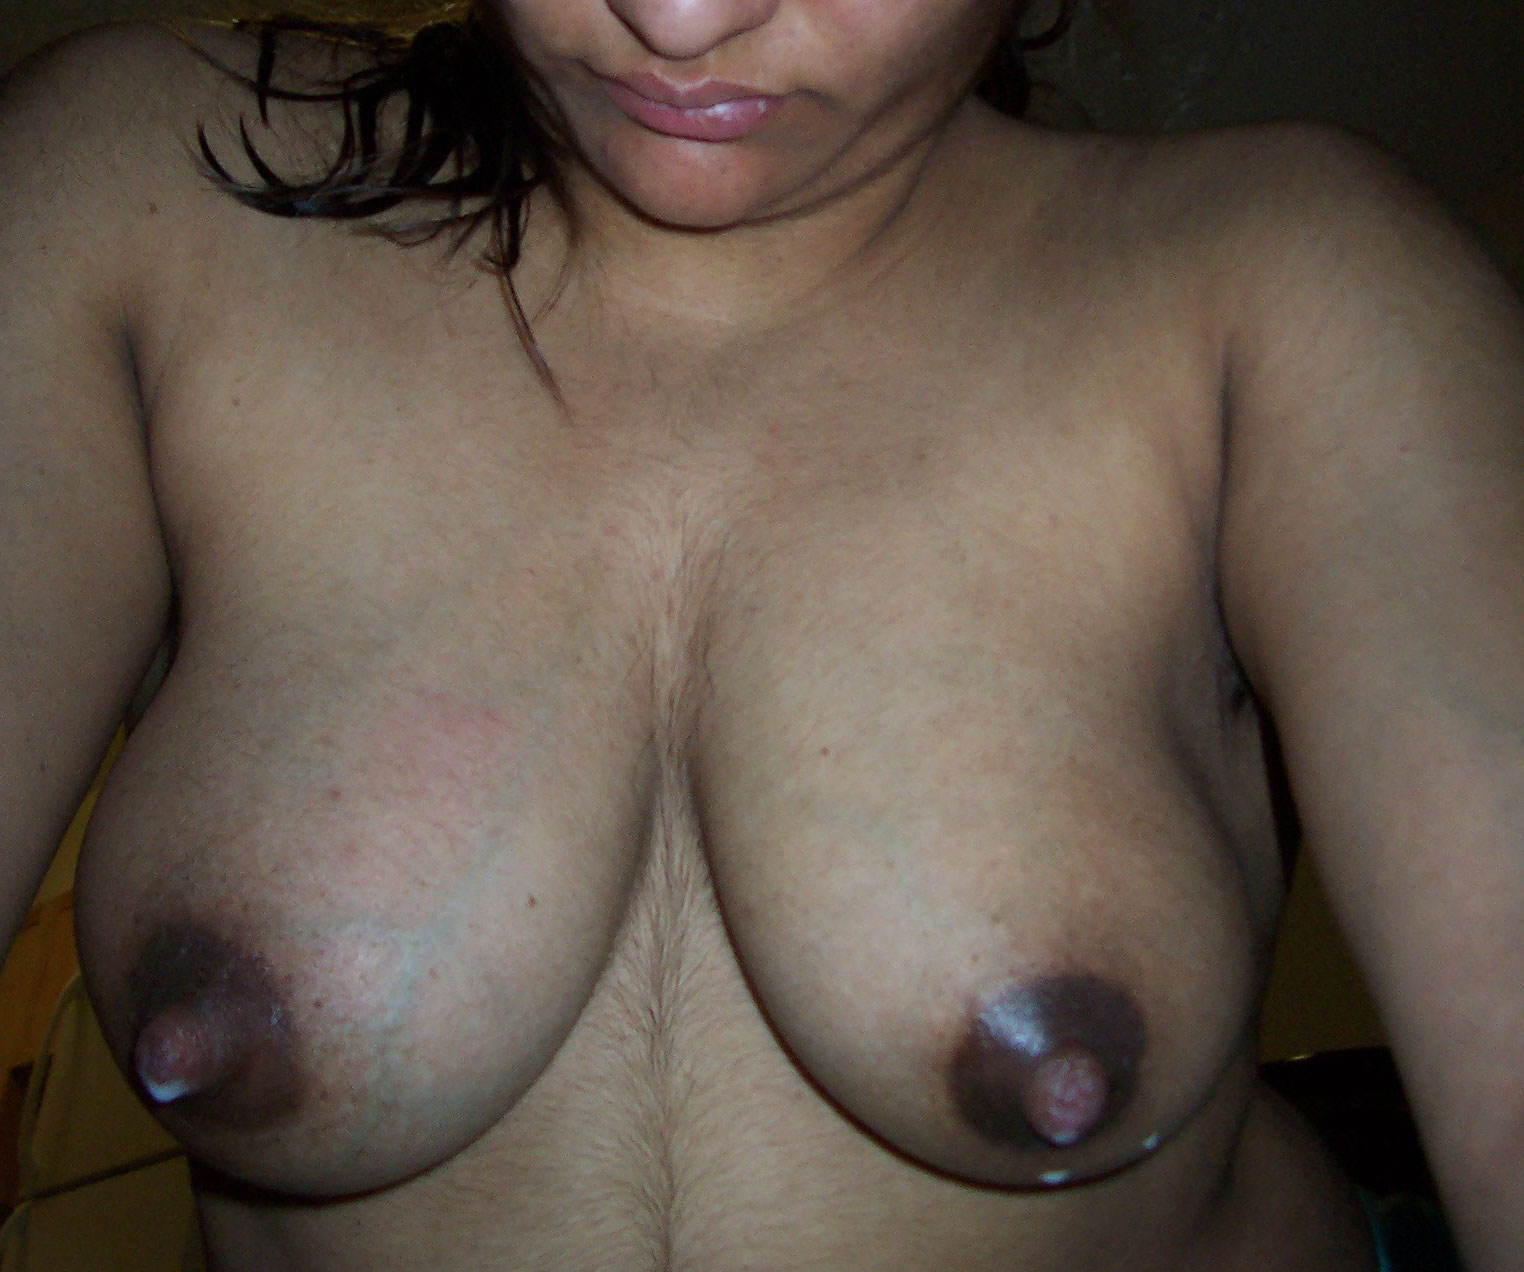 Necessary words... Bhabhi sexy boobs that